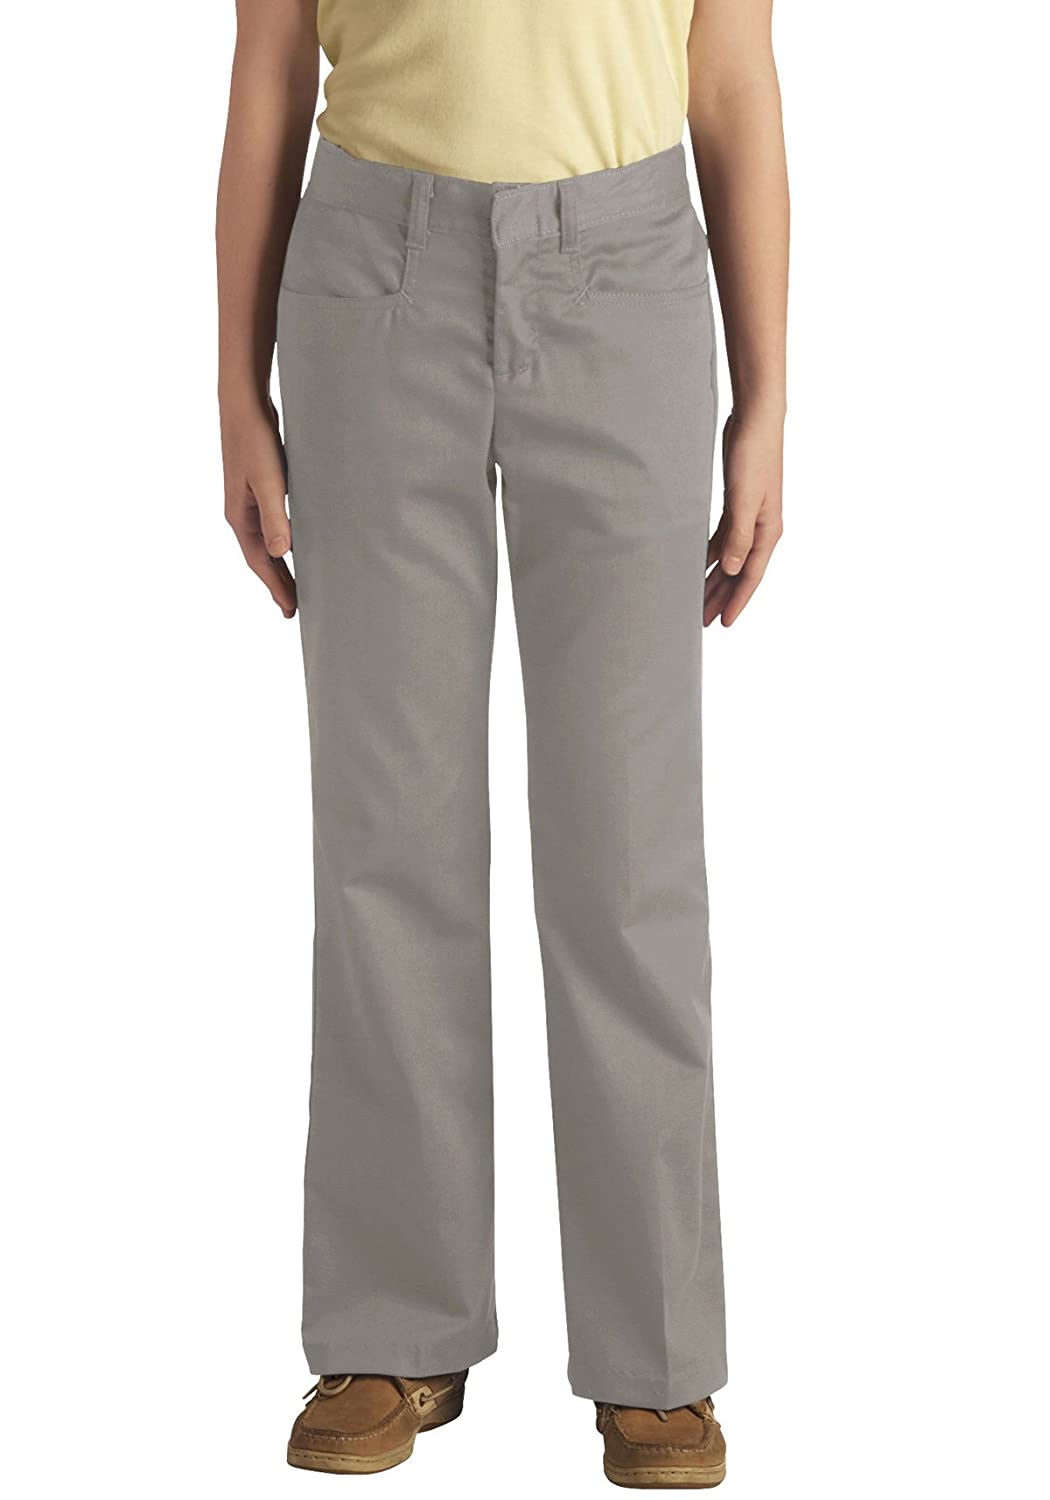 Dickies - - 71-969 Mà ¤ dchen Stretch Pant Flare Bottom (Junior Grà ¶ à Ÿ en) 83294